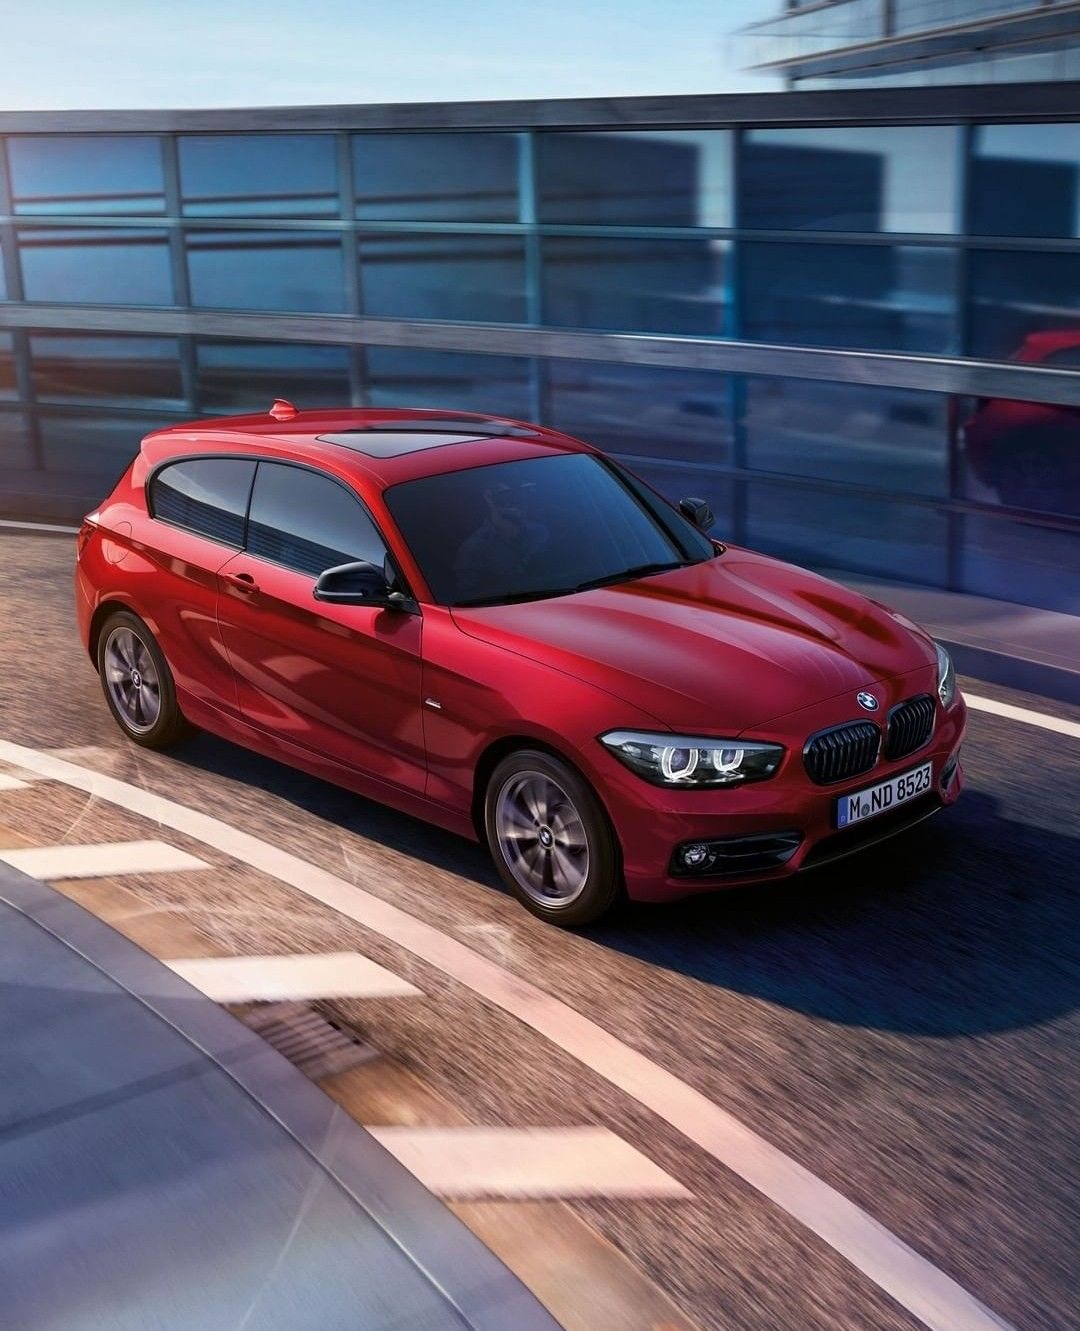 Pin By Blanka Pit On Auto S Bmw Bmw 1 Series Red Car